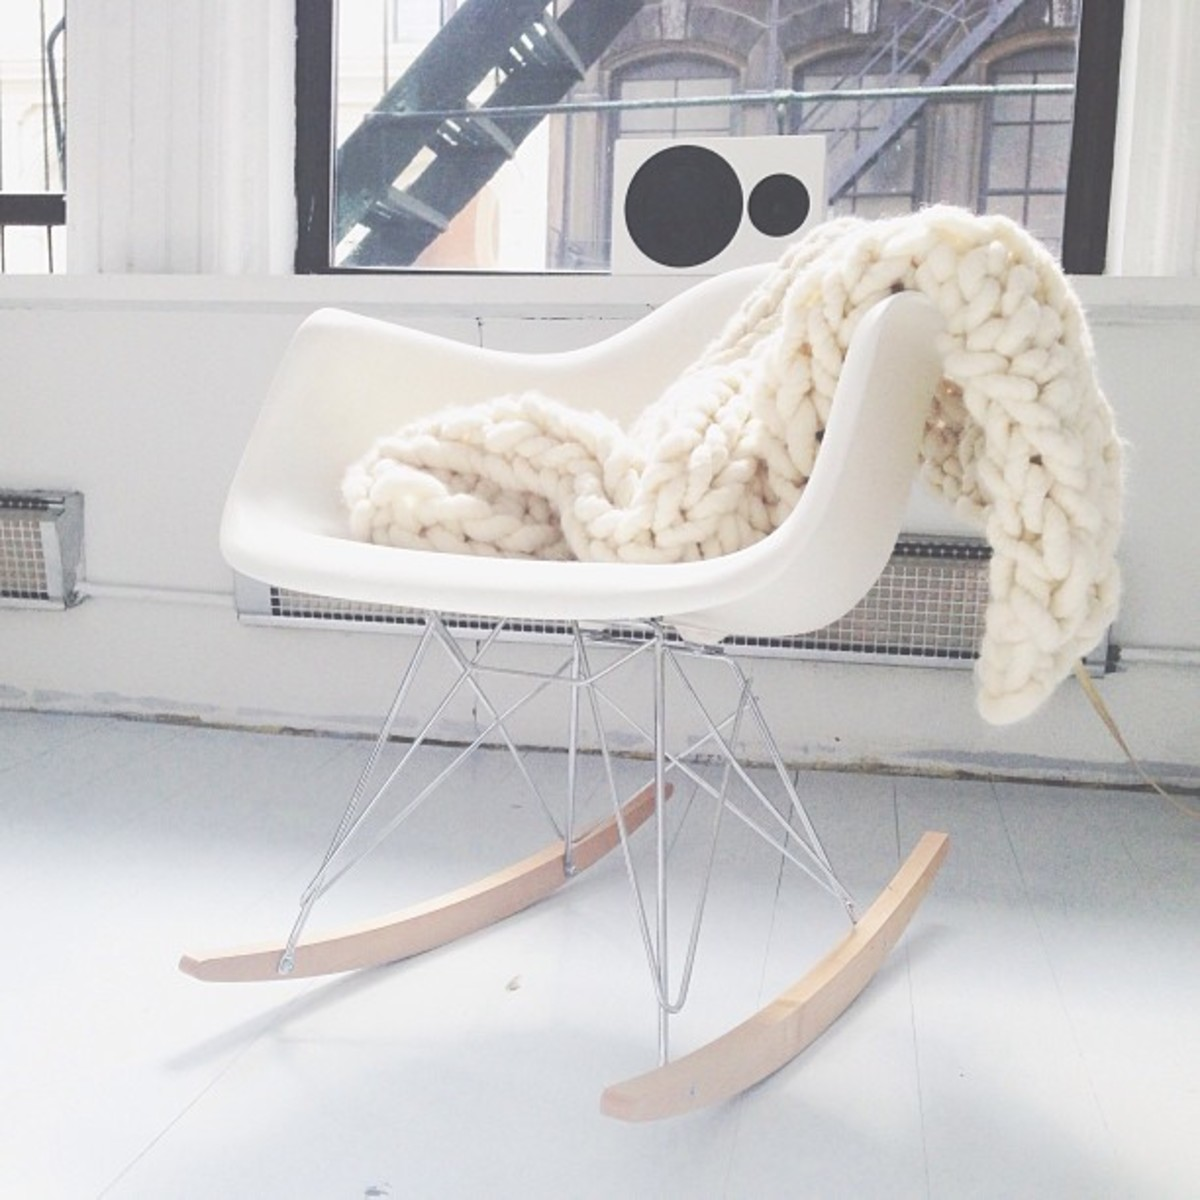 Knitting Patterns For Chunky Throws : 7 Chunky Knitting Patterns for You and Your Home